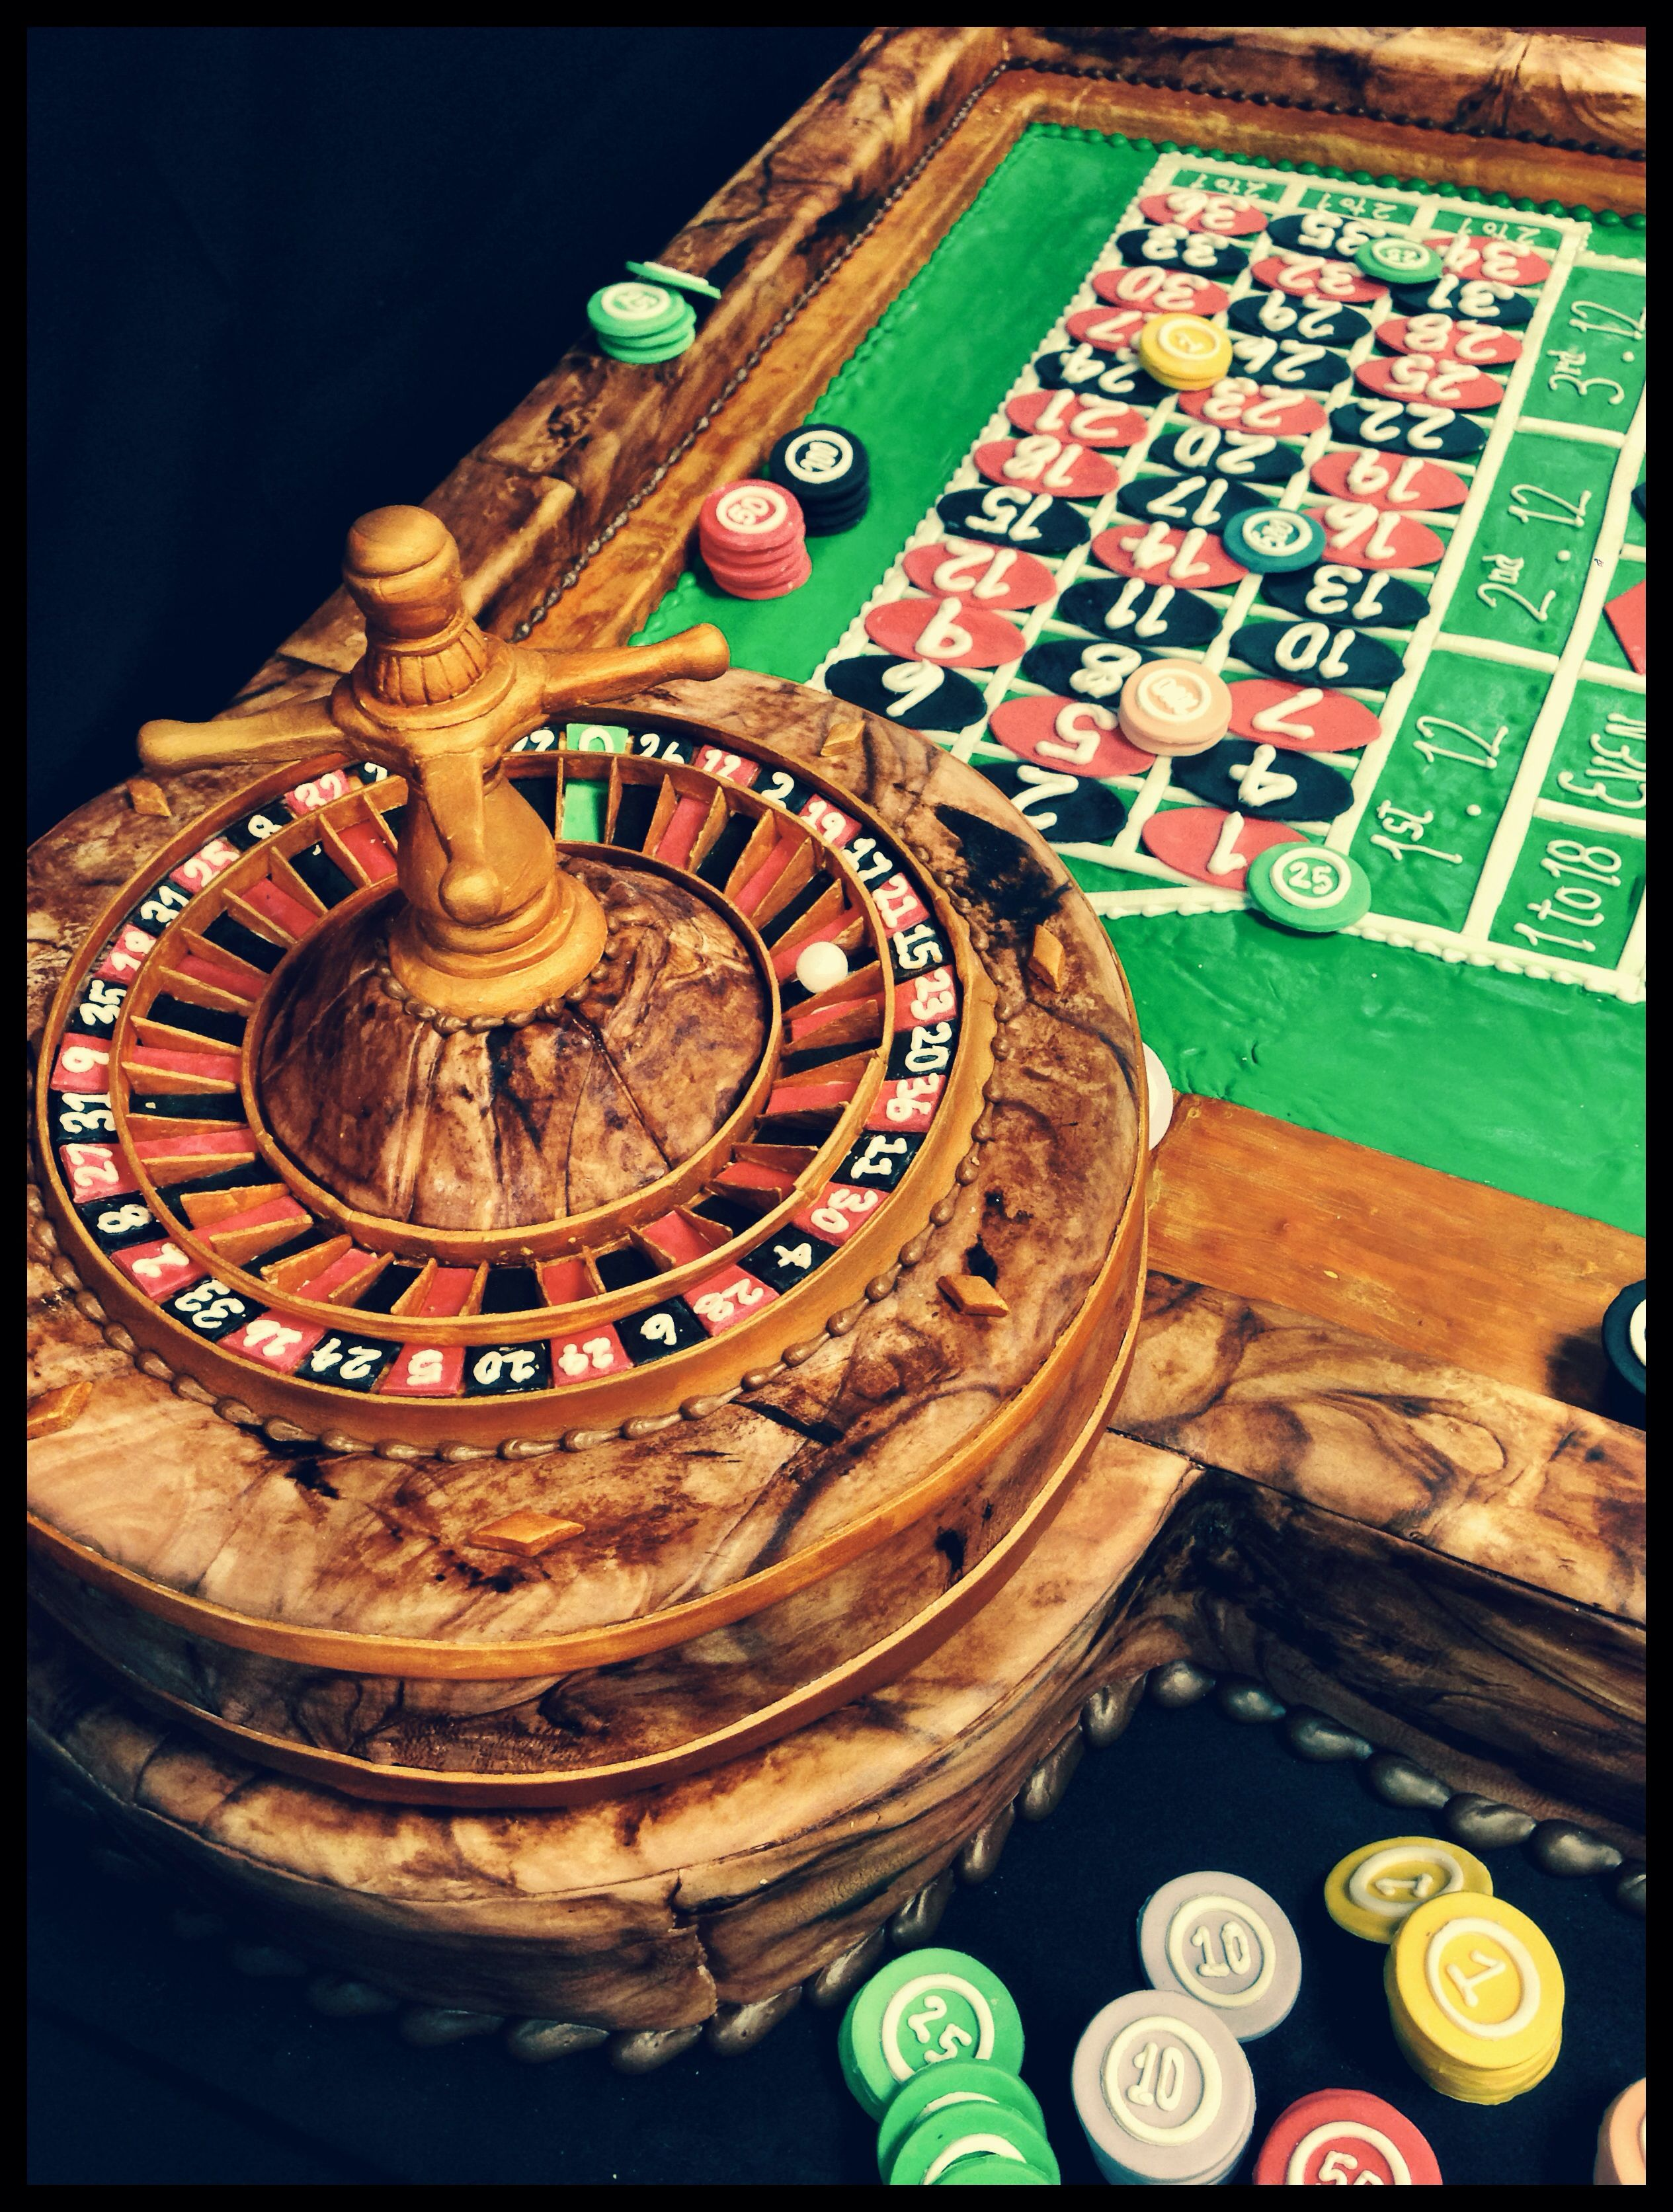 Wooden roulette buy black wooden roulette blackjack table led - Roulette Table Cake With Actual Spinning Wheel